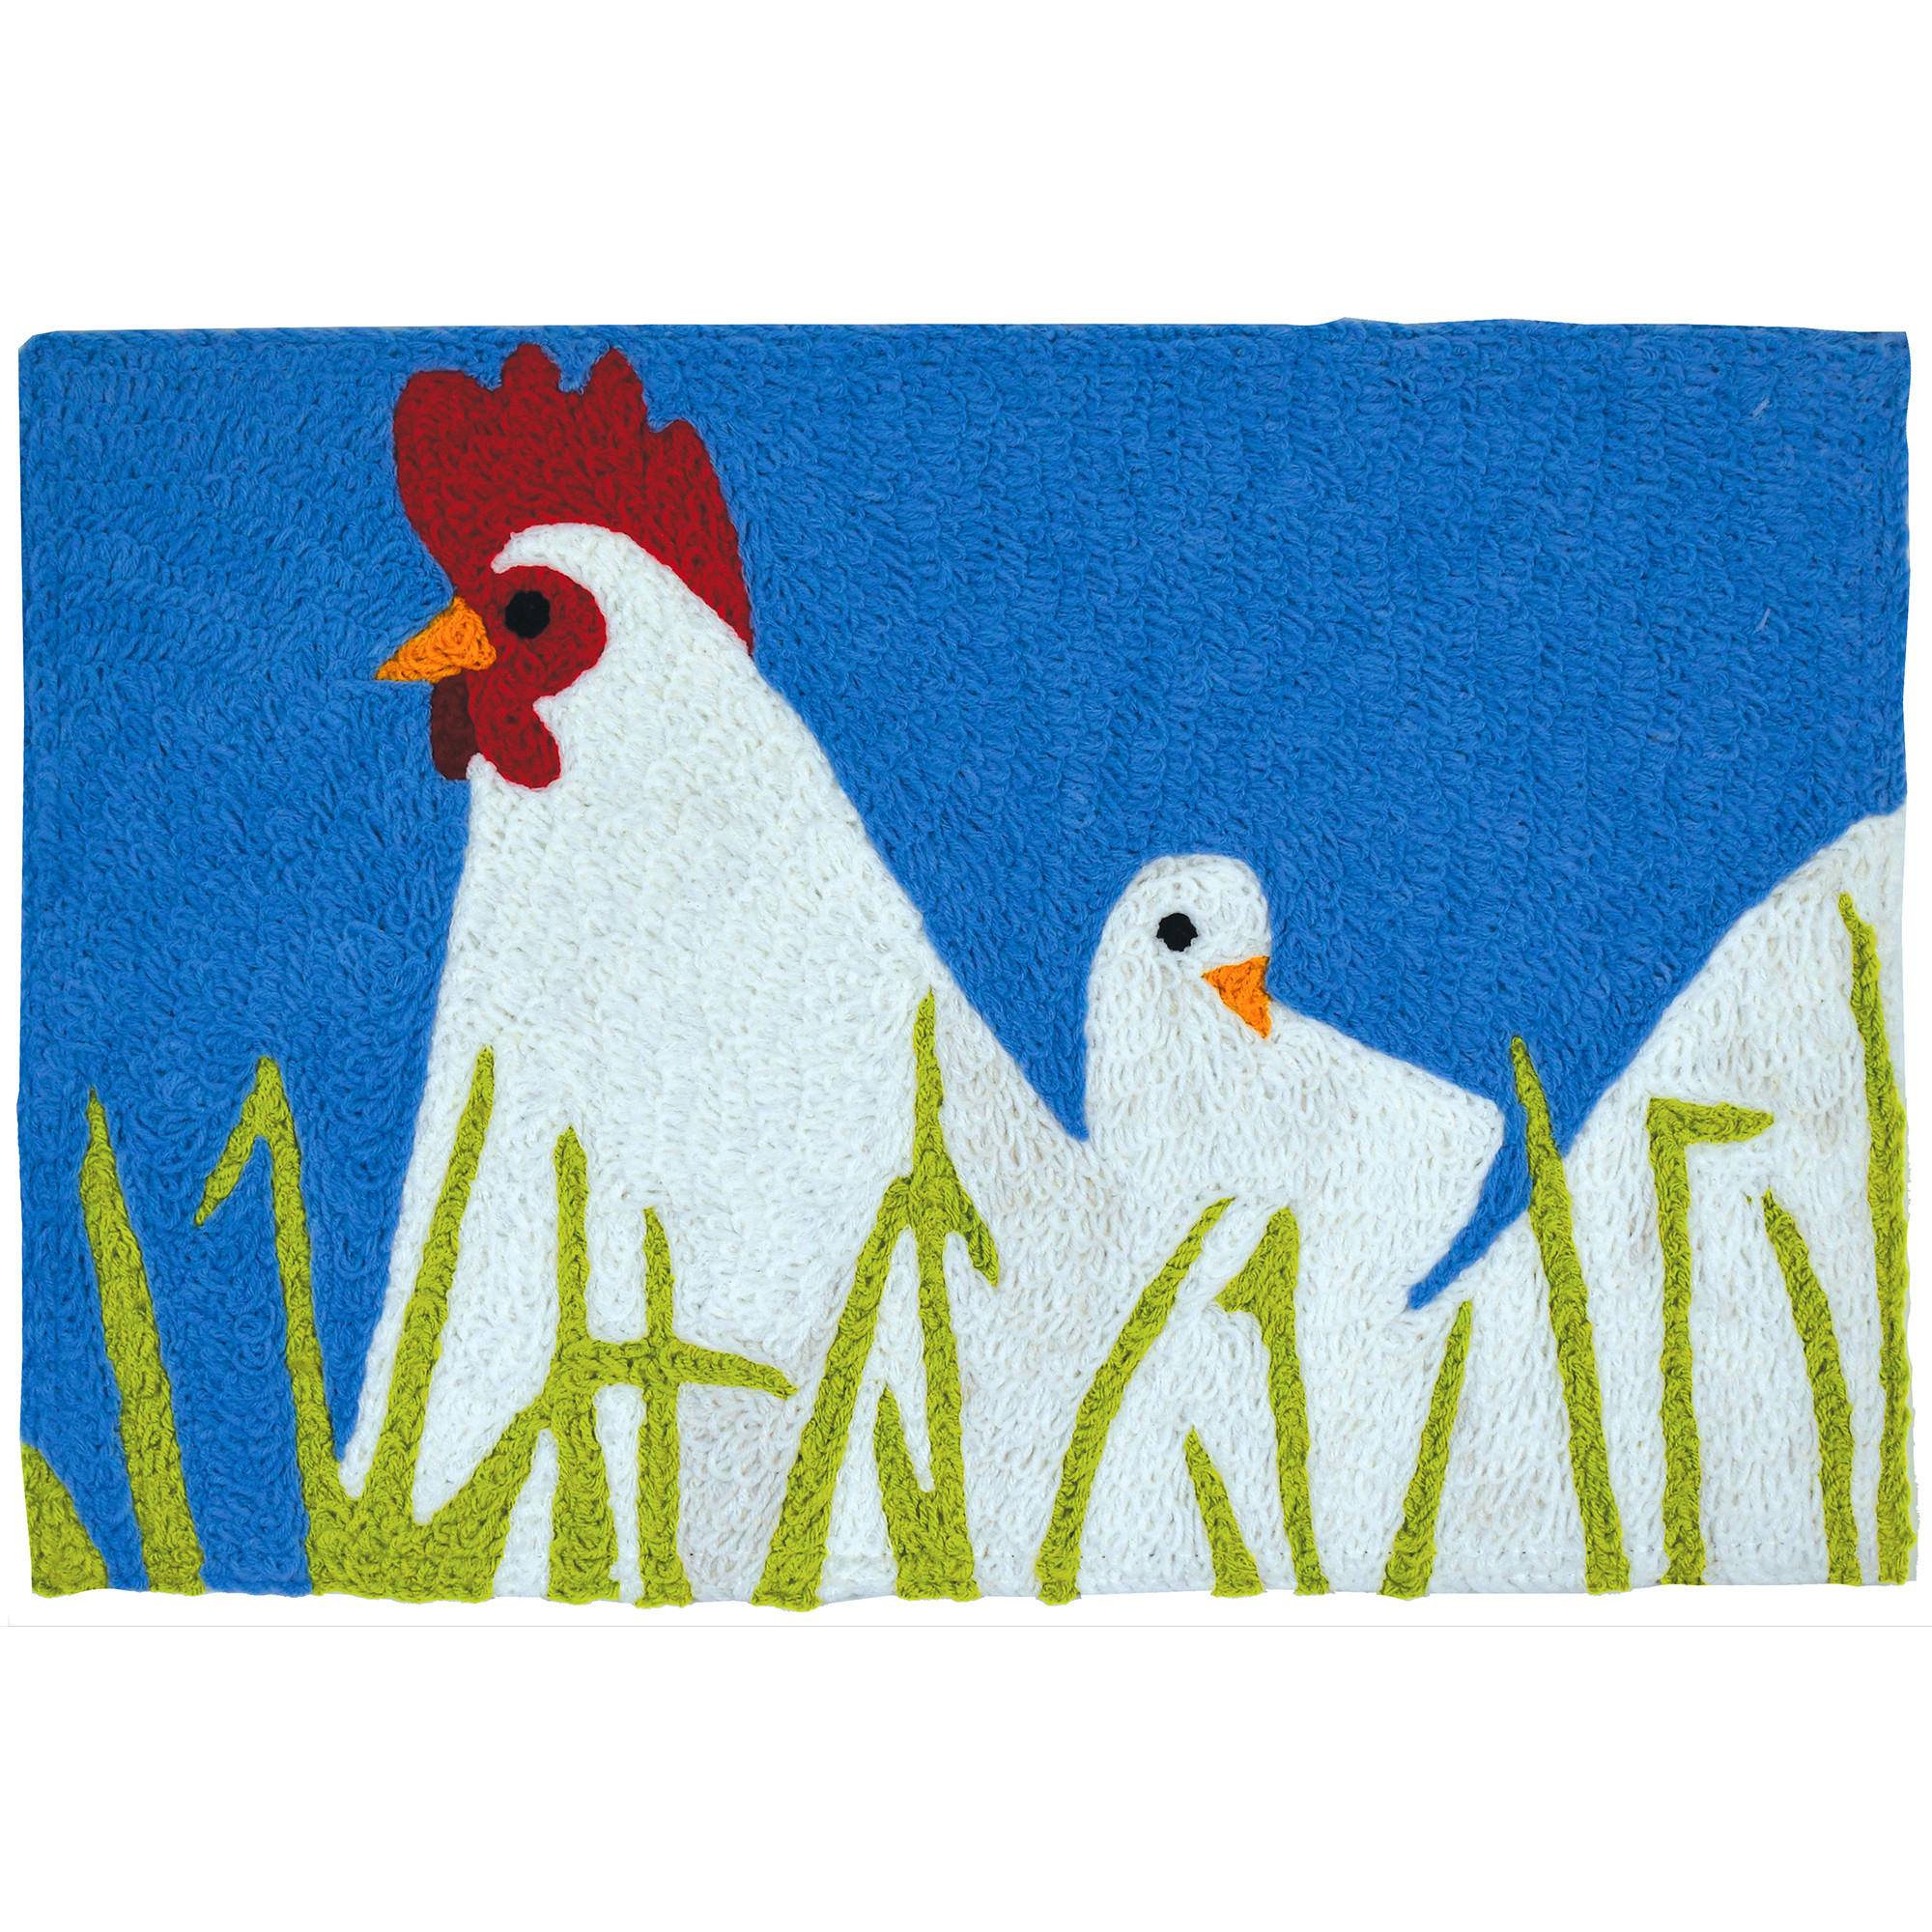 A white hen and her chick are enjoying the free-range life among light green blades of grass on this Jellybean® accent rug. Artist Sarah Frederking has made a simple statement piece suitable for indoor or outdoor placement. This indoor/outdoor throw rug is crafted from machine washable polyester.